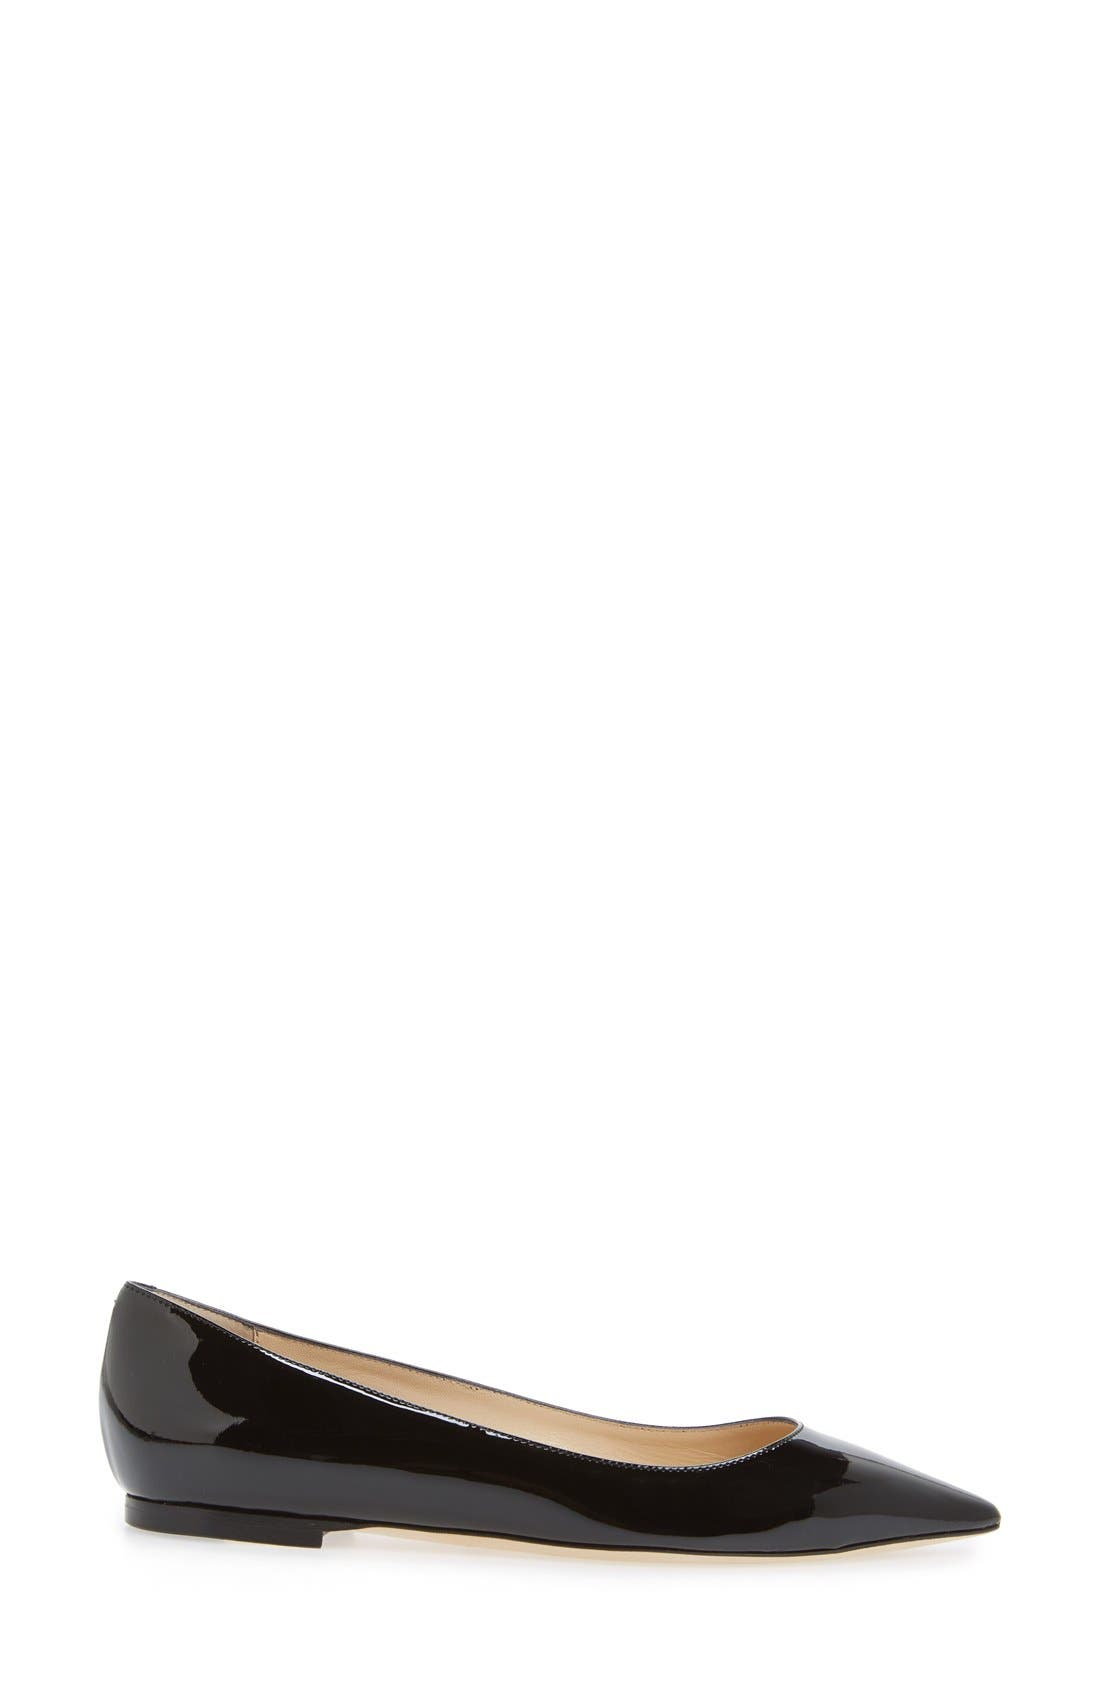 'Romy' Pointy Toe Flat,                             Alternate thumbnail 34, color,